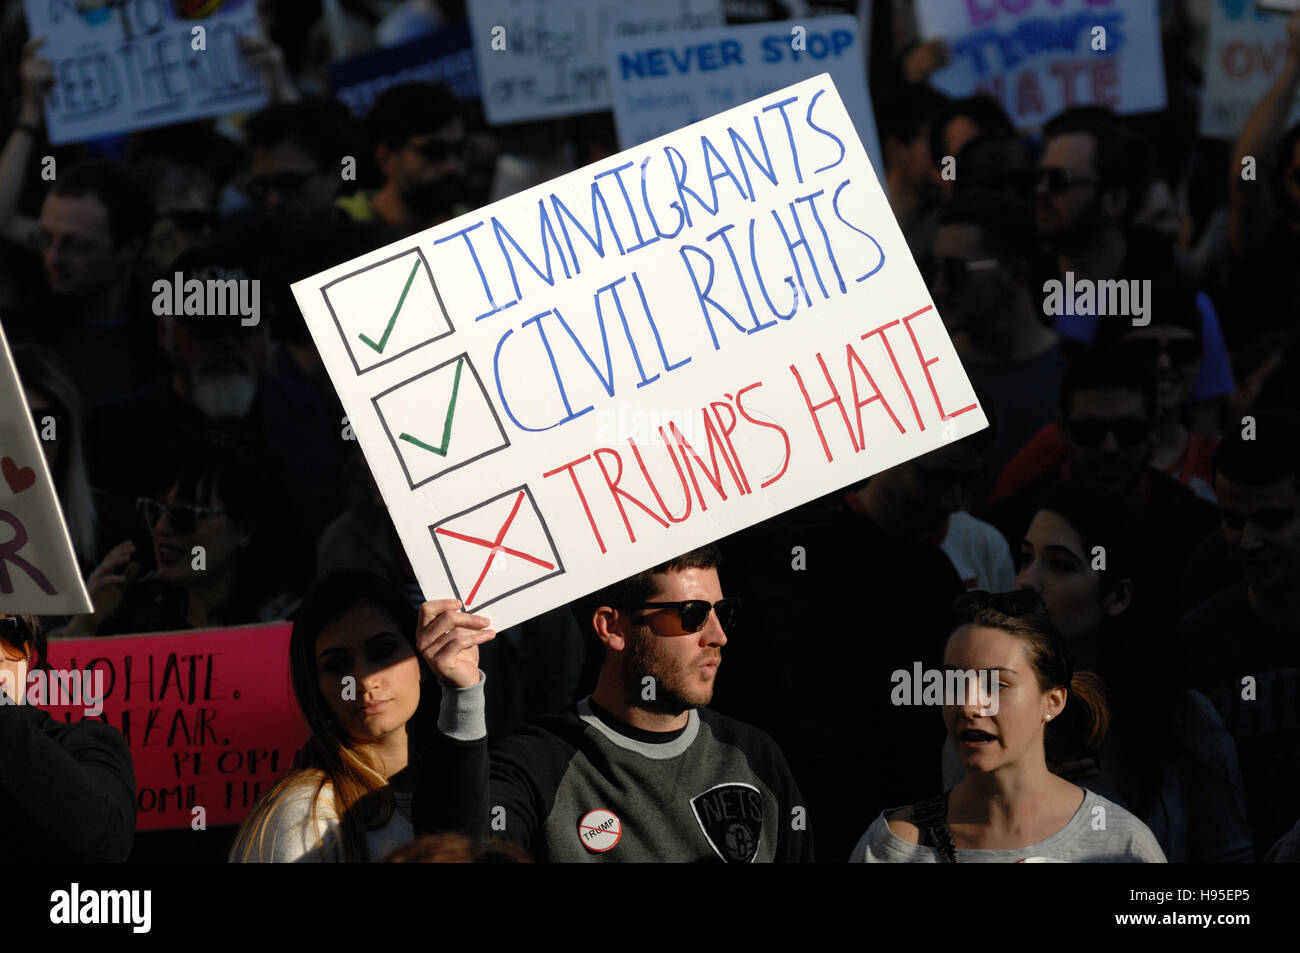 Philadelphia, Pennsylvania, USA. 19th November, 2016. Protesters carry signs during ongoing Anti-Trump protests, - Stock Image